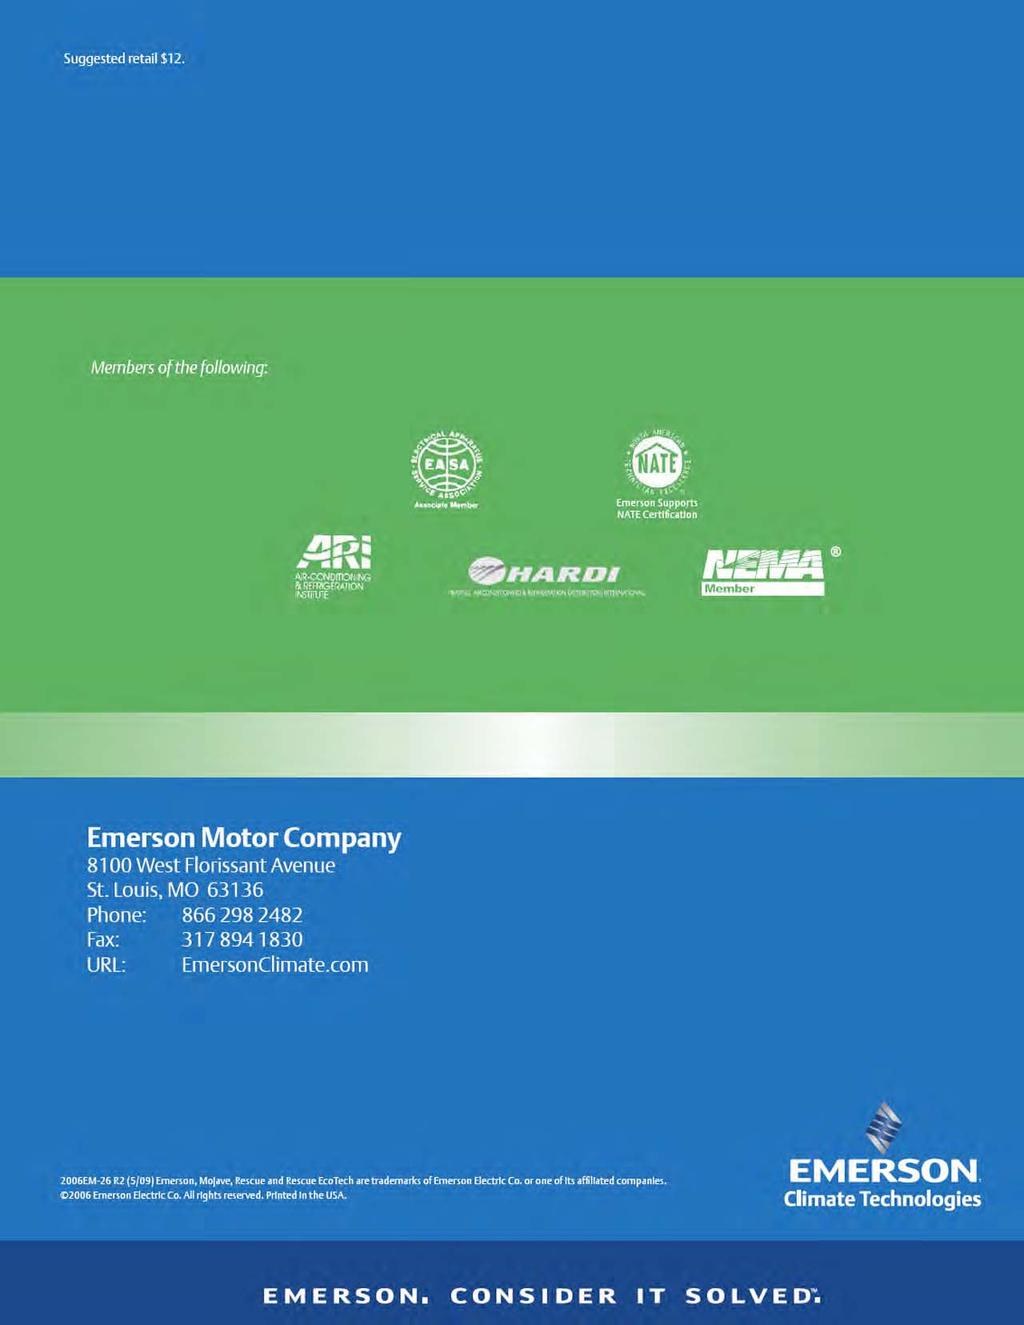 Emerson Motor Wiring Diagram 4760 Just Diagrams Rescue Blower Customer Service Providing Solutions Round The Clock Marathon